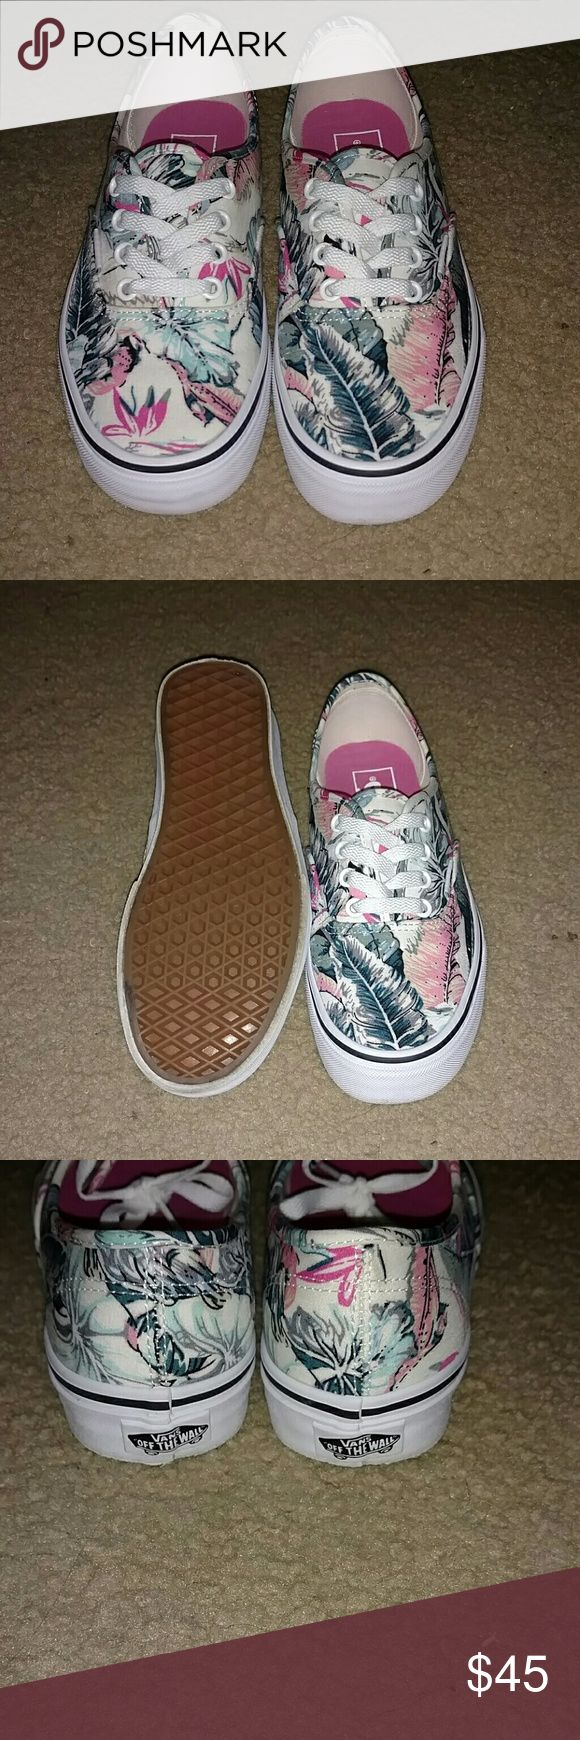 Floral vans Only wore once Vans Shoes Athletic Shoes